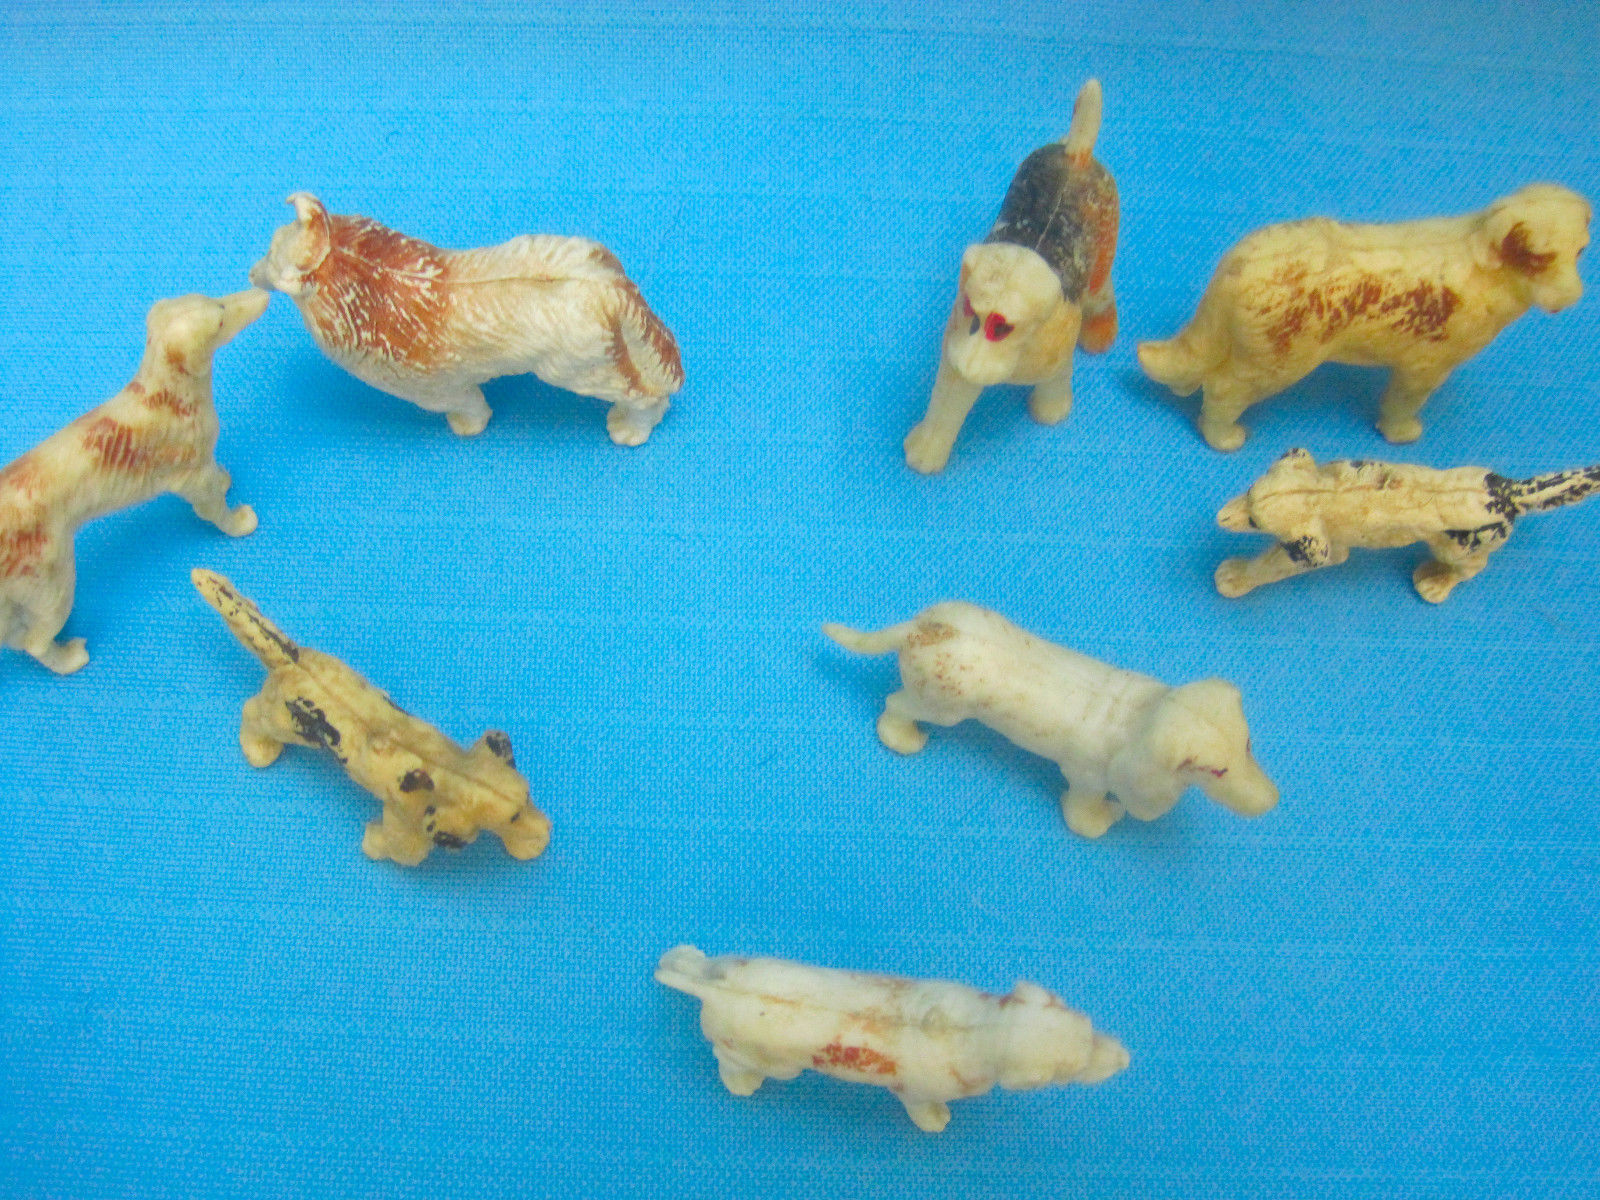 Dogs Vintage Toy Rubber Figurines Lot of 8 Breeds Collie Basset Hound Airedale +